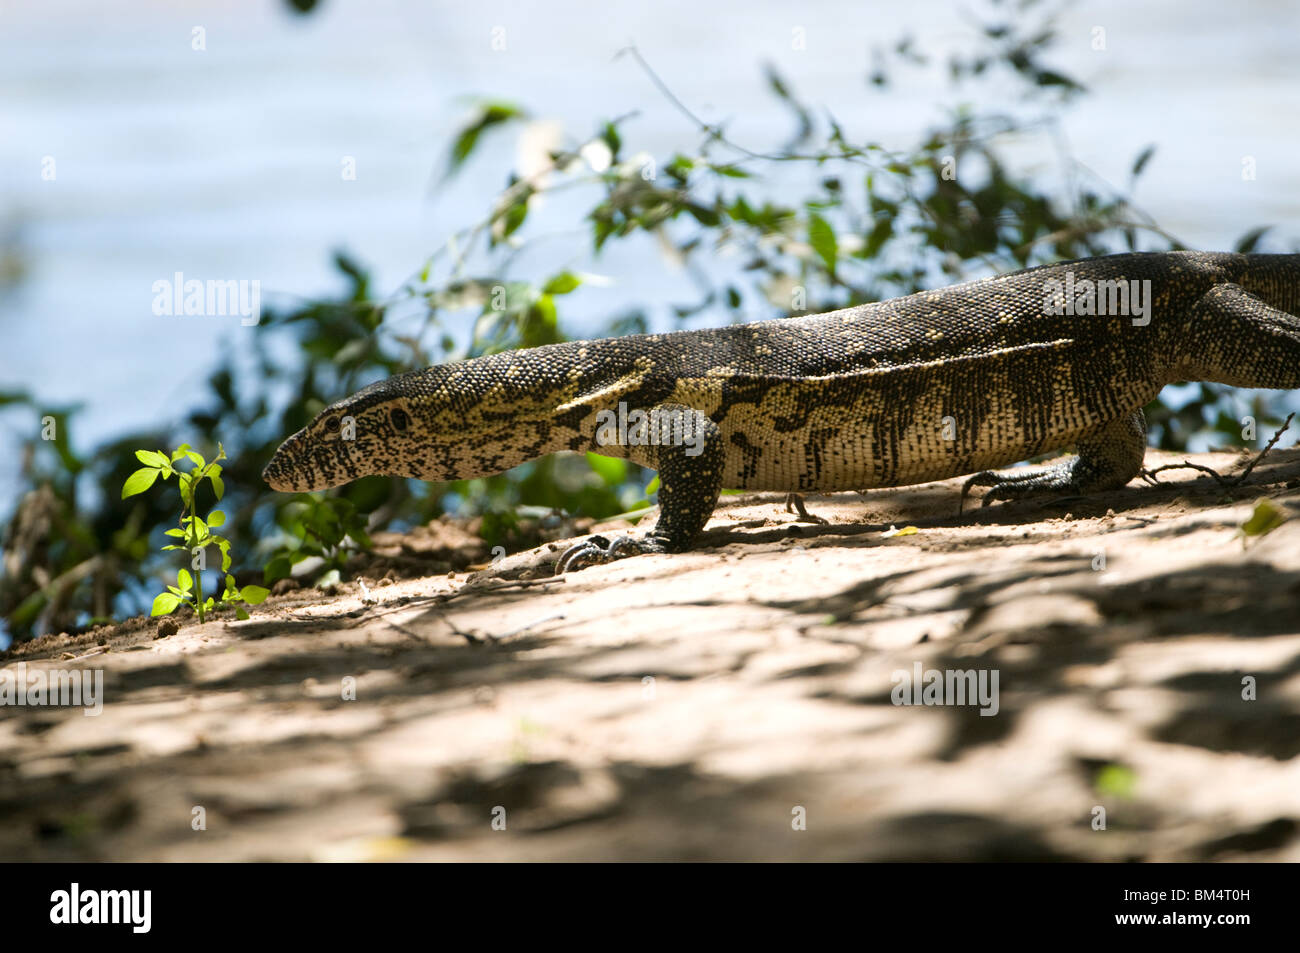 Water monitor on the banks of the Kunene river, Namibia. - Stock Image